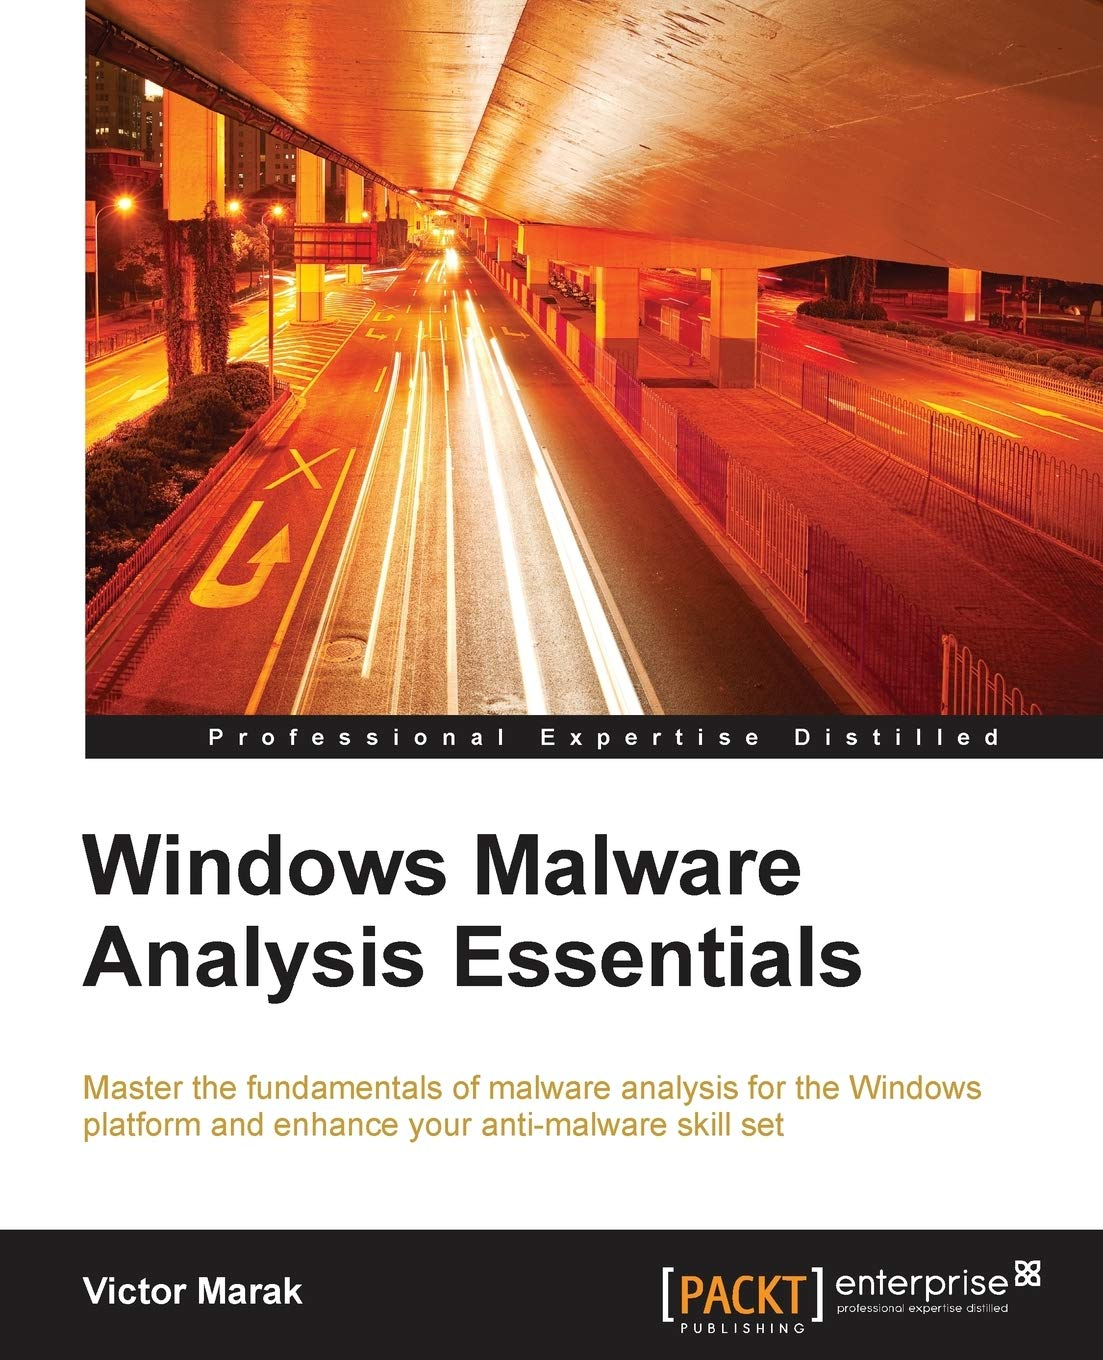 Windows Malware Analysis Essentials: Master the fundamentals of malware analysis for the Windows platform and enhance your anti-malware skill set (English Edition)